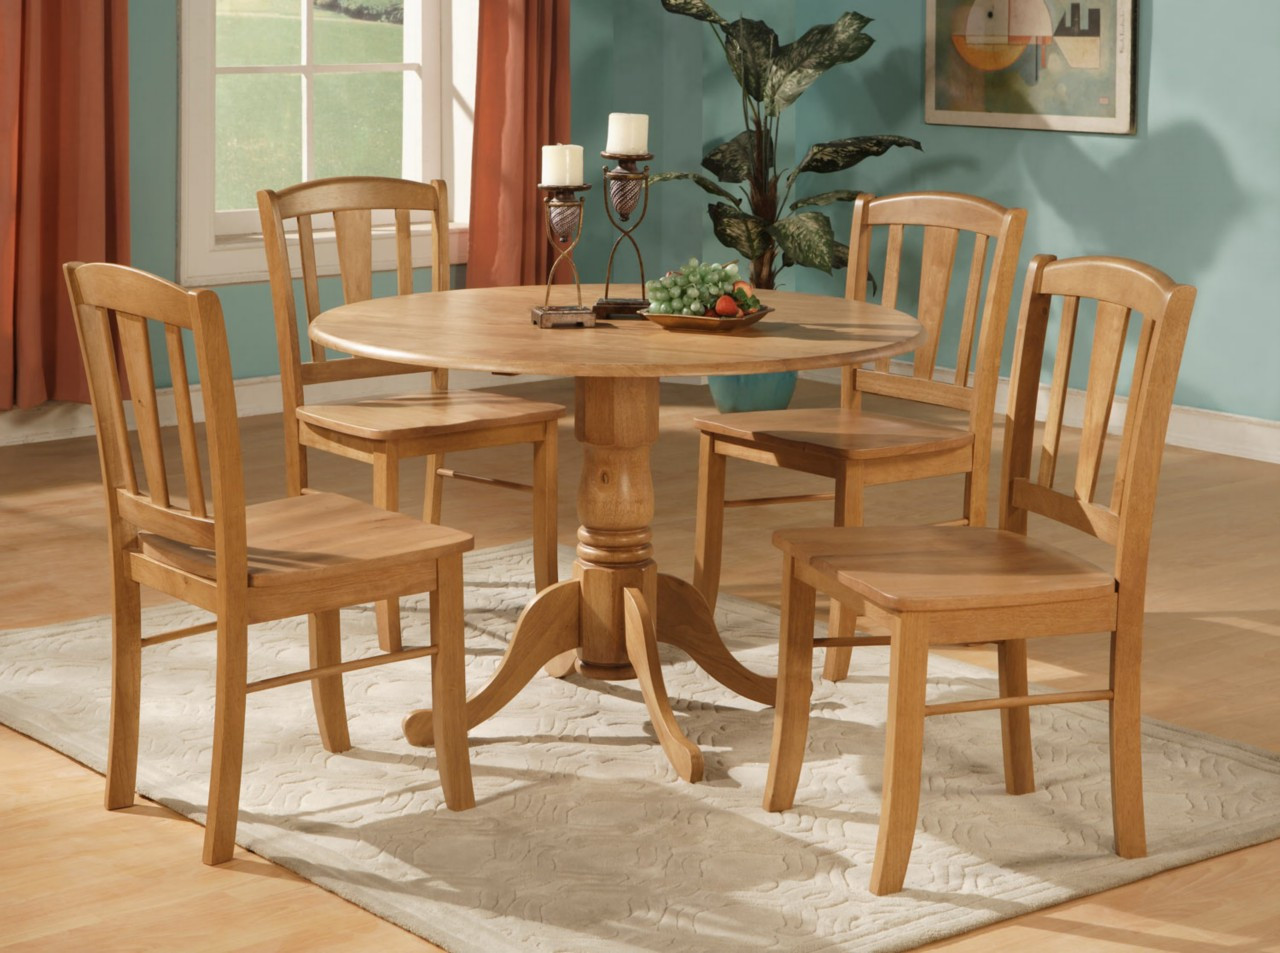 Best ideas about Dining Table Sets . Save or Pin 5PC ROUND DINETTE KITCHEN DINING SET TABLE AND 4 CHAIRS Now.